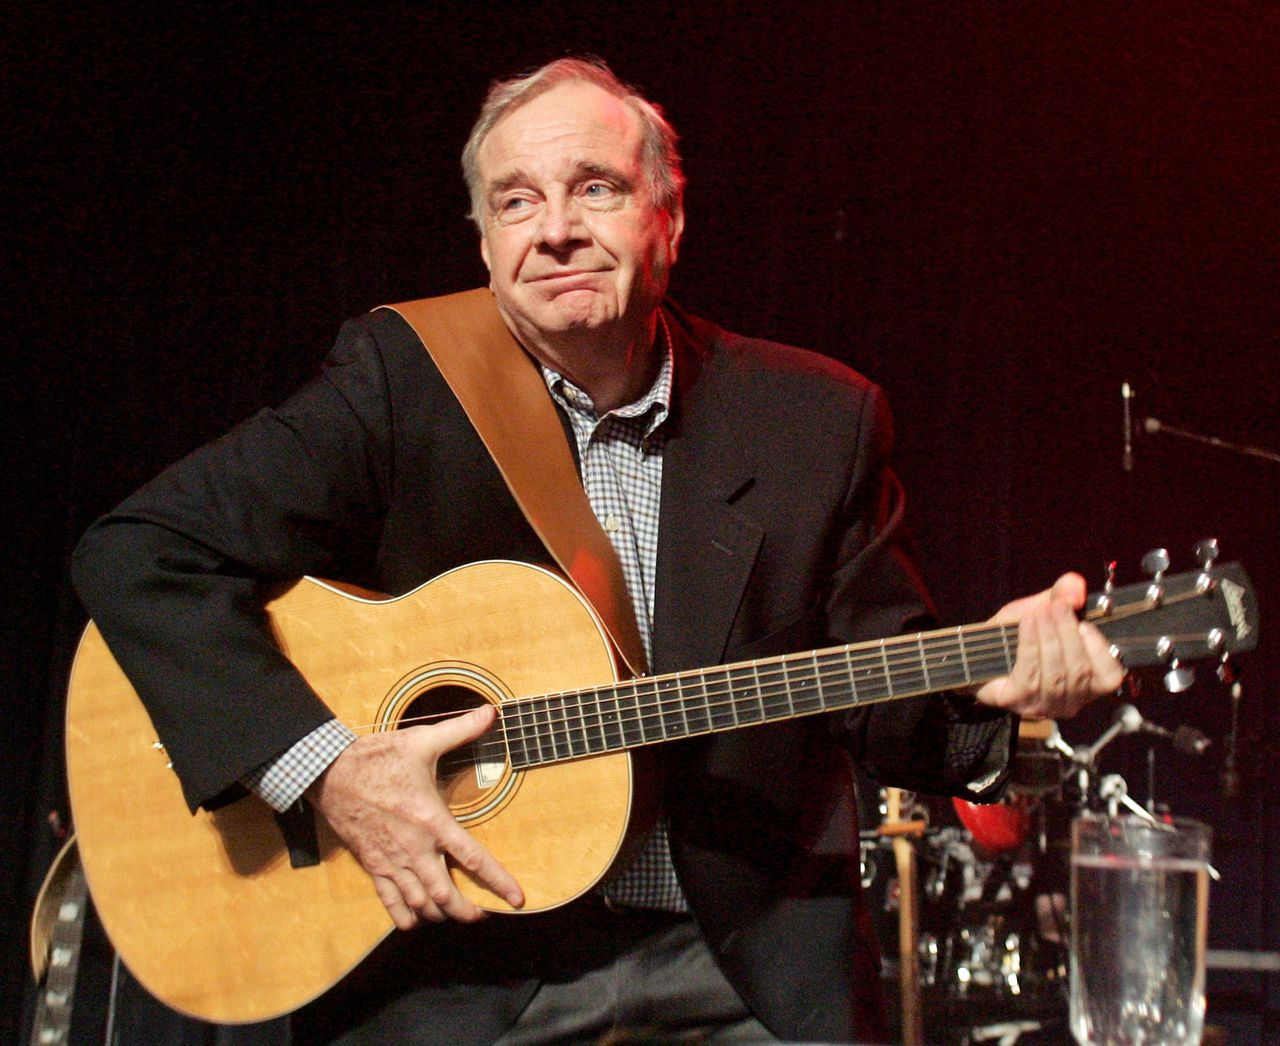 Liberal leader and Canada's Prime Minister Paul Martin plays the guitar at the Centre Culturel Franco-Manitobain in Winnipeg, Manitoba January 21, 2006. Martin accused Conservative leader Stephen Harper of being a clone of the U.S. extreme right on Saturday, but polls showed Harper on track to defeat him in Monday's election. Canadians will head to the polls in a federal election January 23. REUTERS/Chris Wattie Premier Paul Martin, zaterdag op verkiezingstournee. (Foto Reuters)